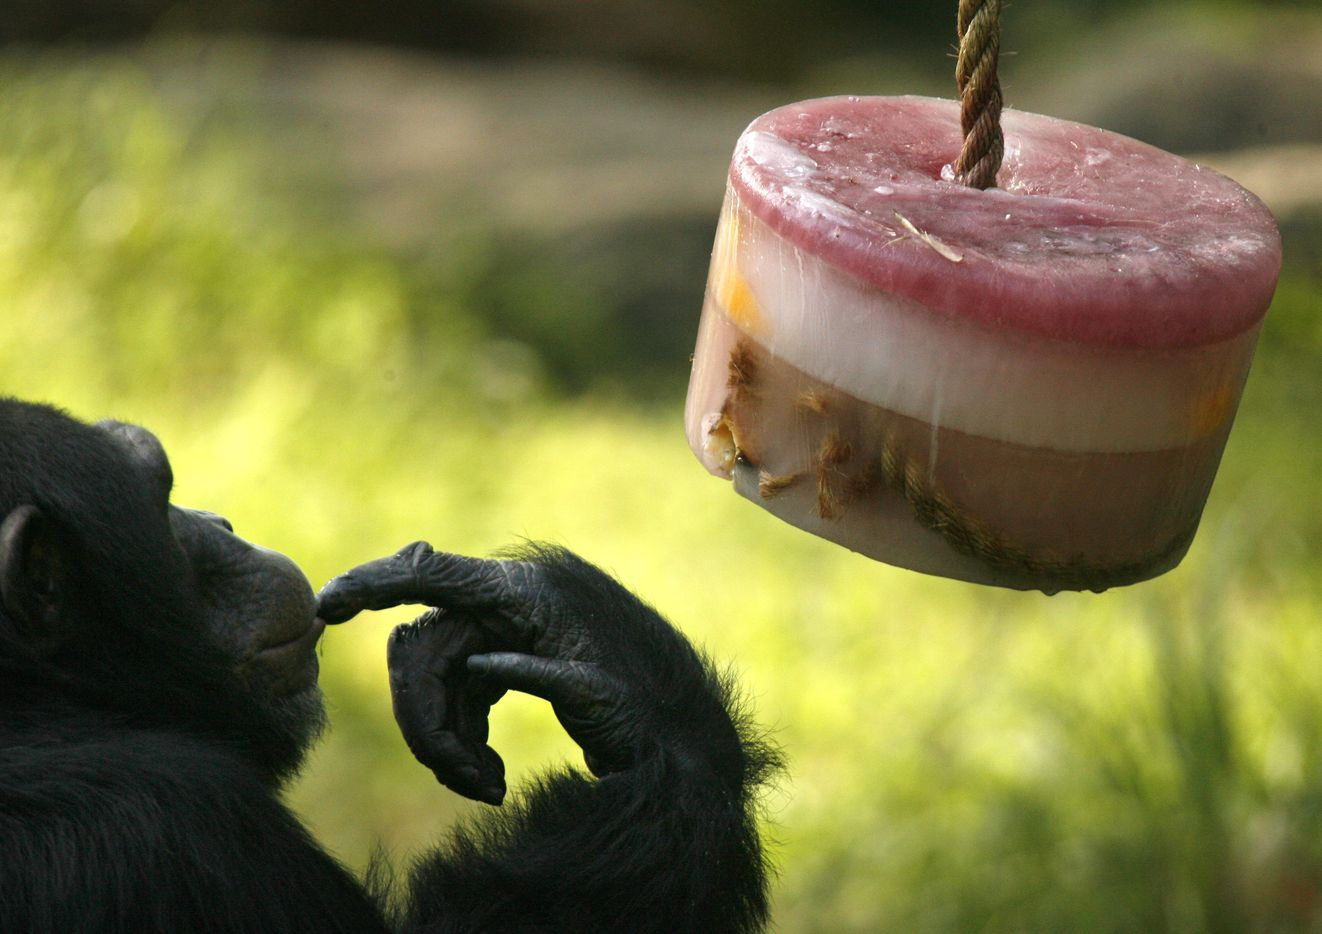 Mookie, a chimpanzee, tried to figure out how to eat a frozen treat at the Dallas Zoo in July 2006.